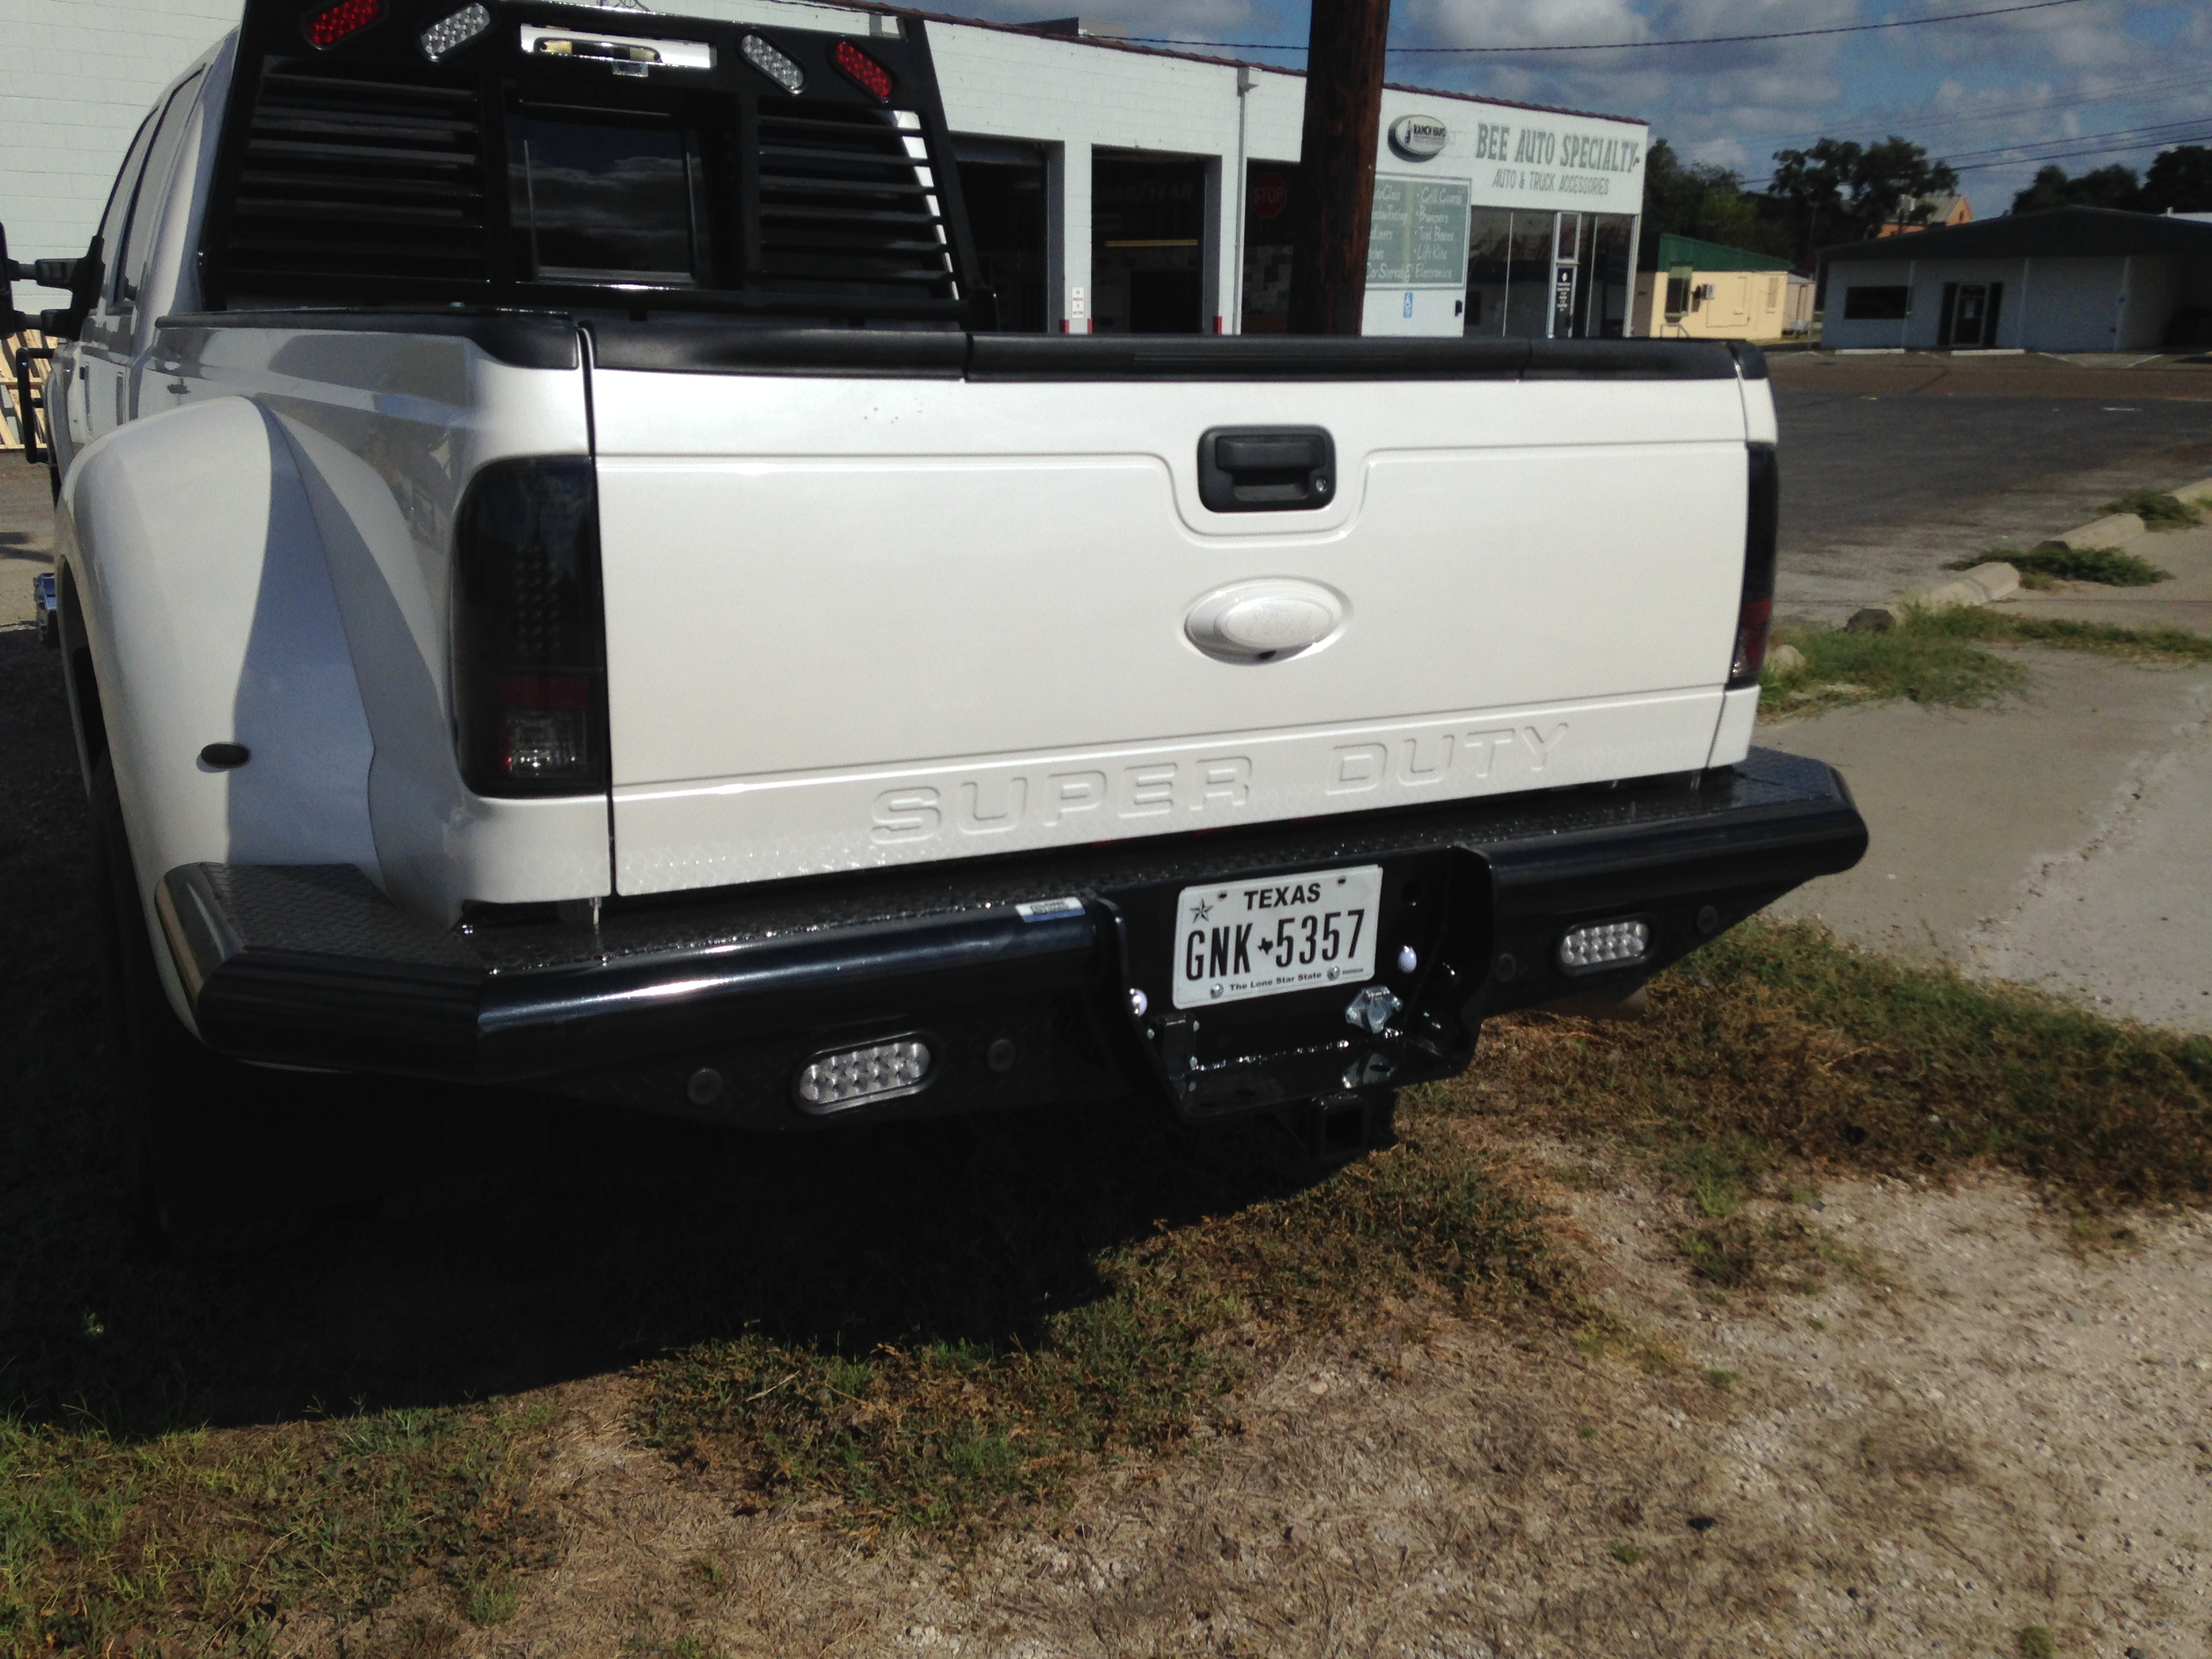 2016 ford Superduty Rear Dually Wrap with LED Lights